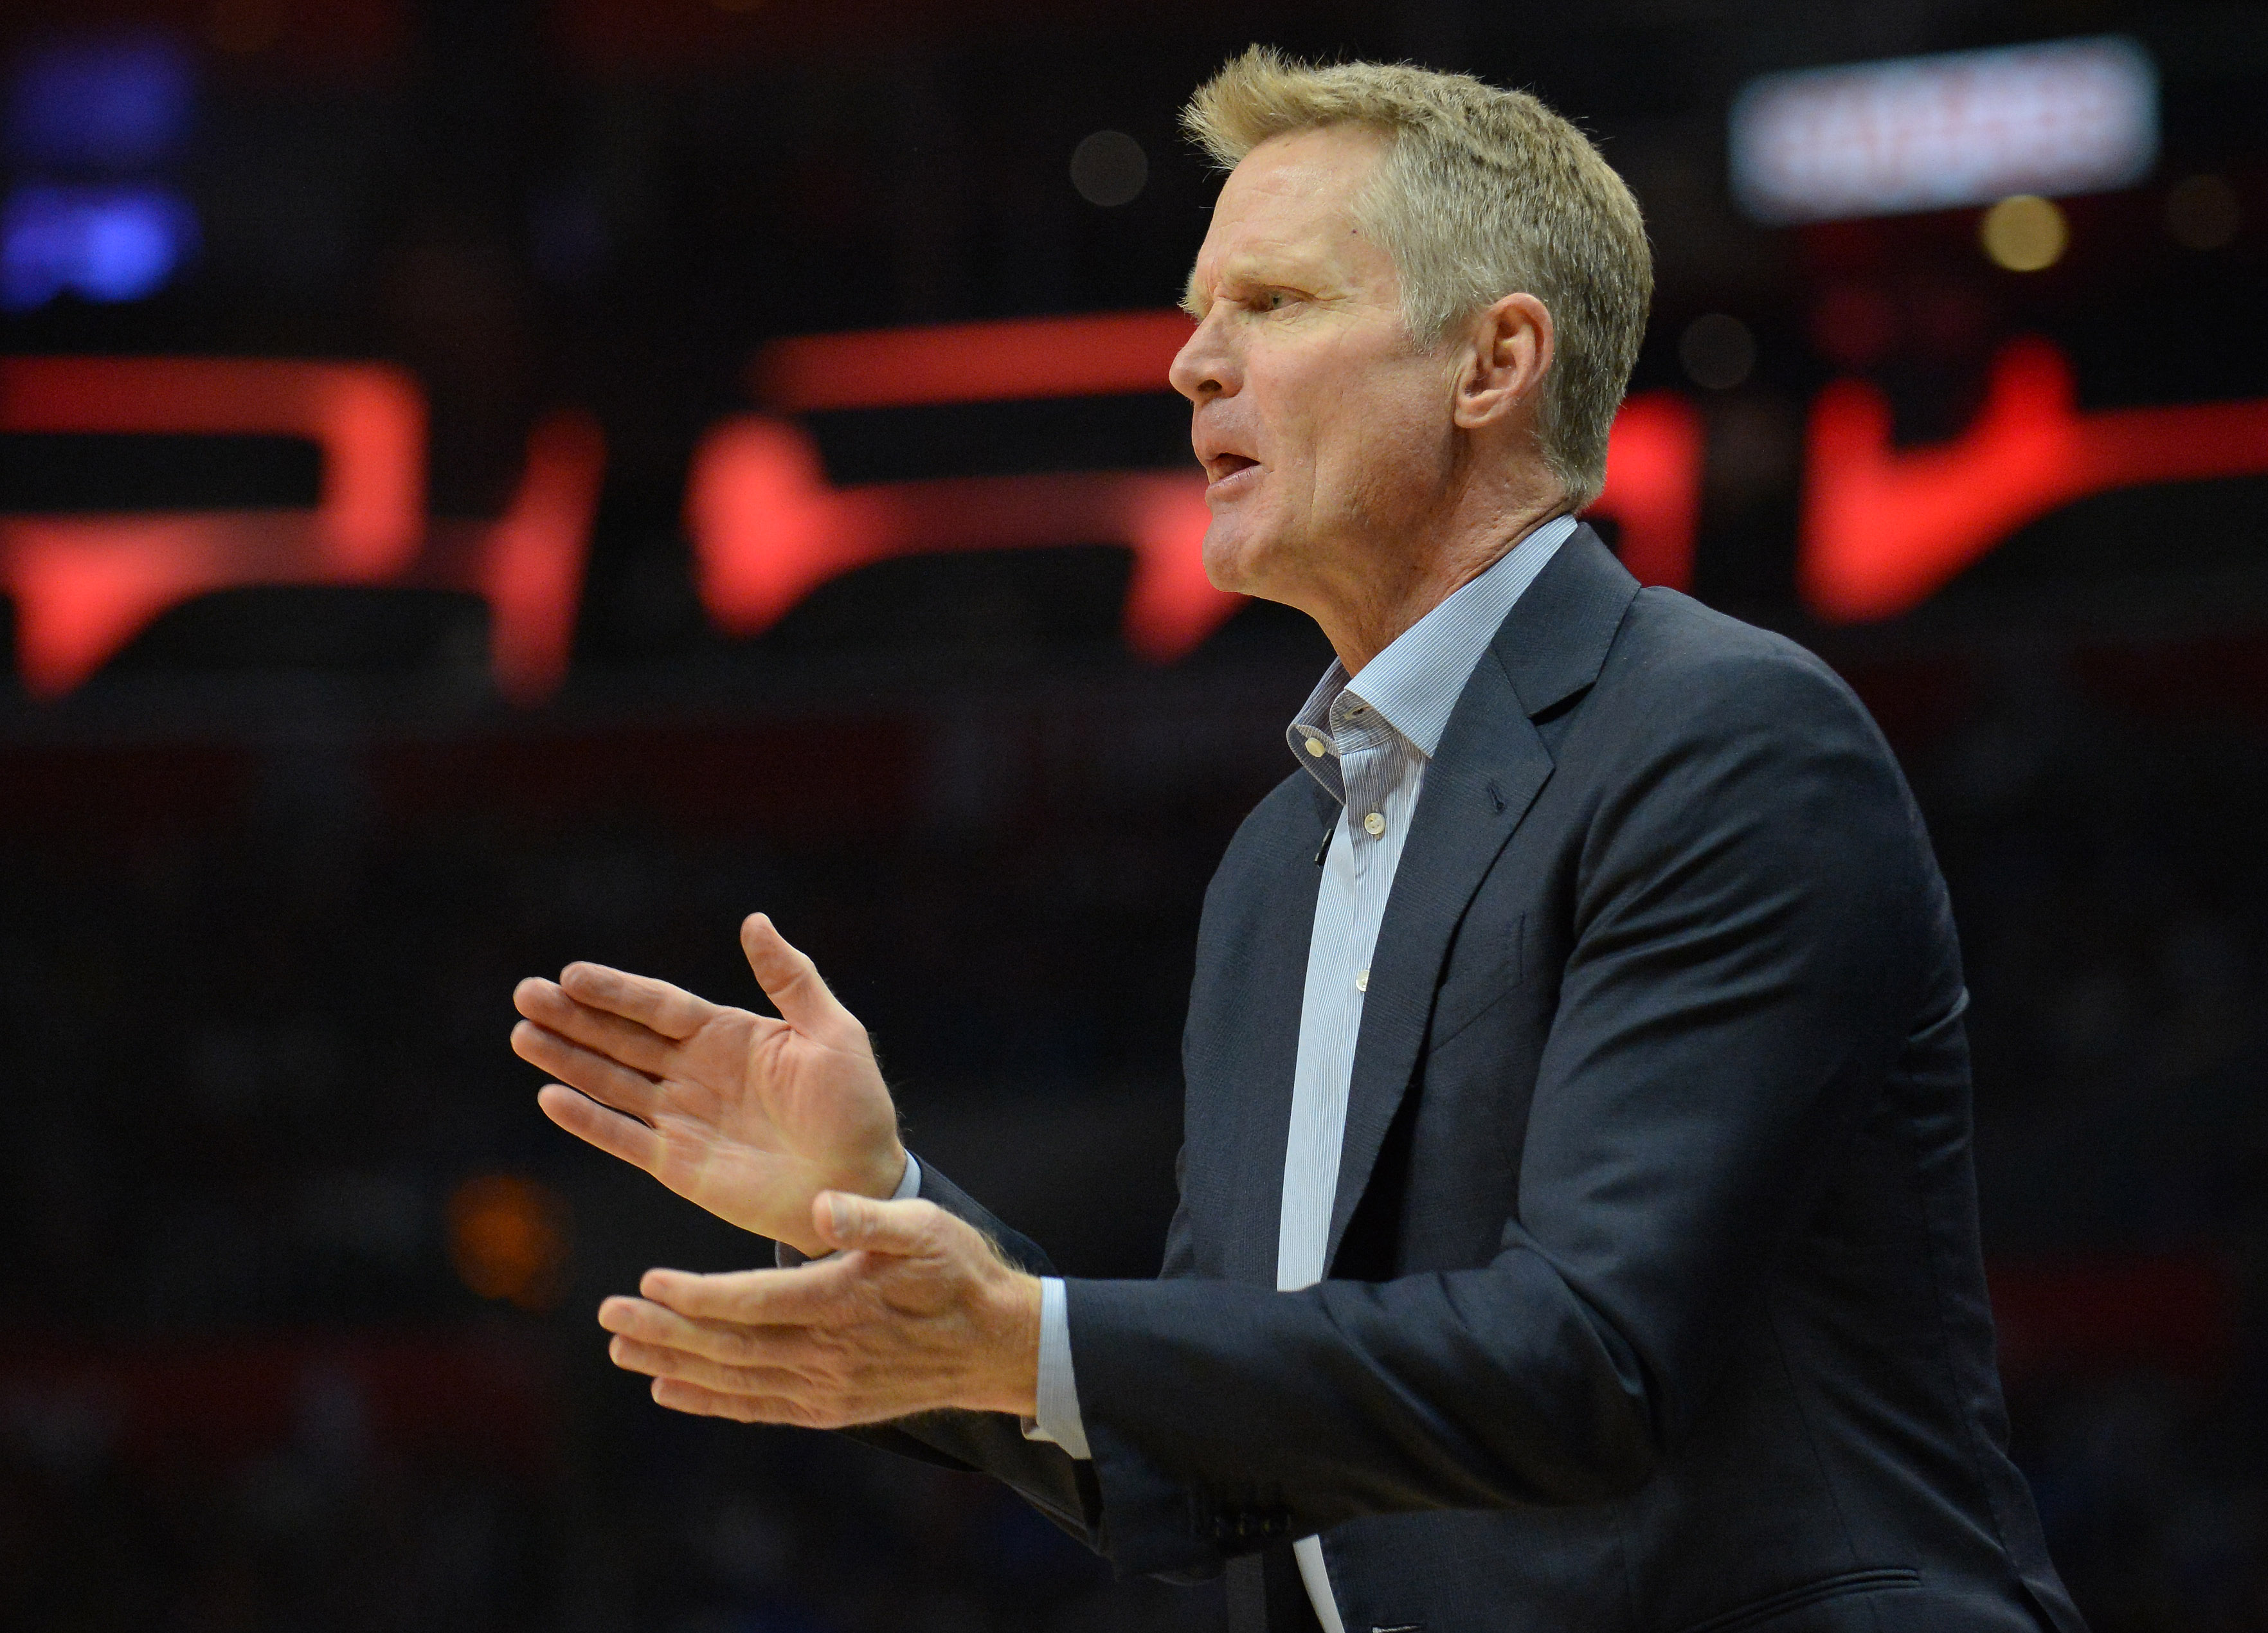 Steve Kerr likens Rockets' Game 3 approach to 'Game of Thrones'